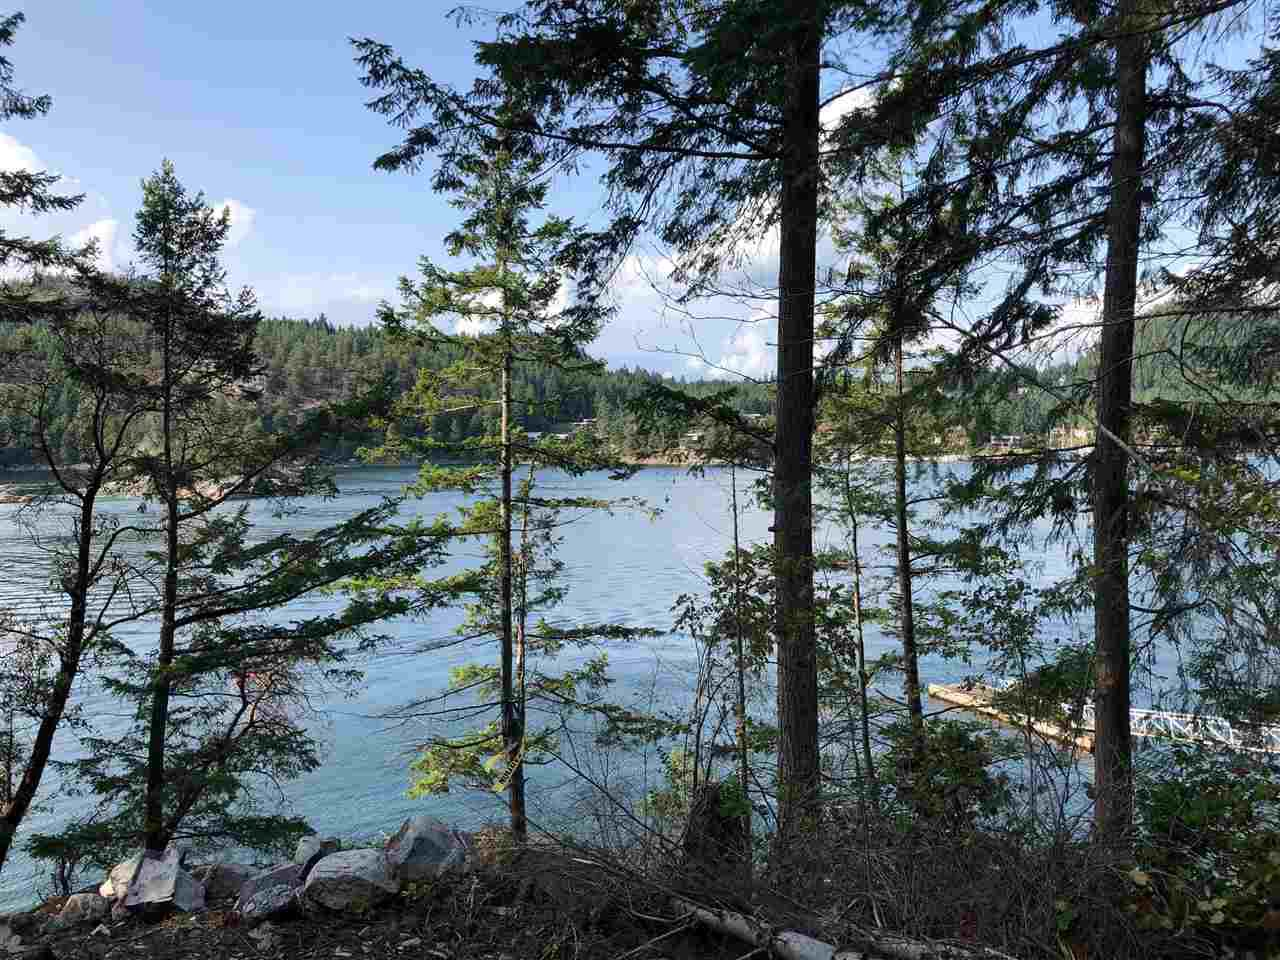 """Photo 8: Photos: 4147 FRANCIS PENINSULA Road in Madeira Park: Pender Harbour Egmont Land for sale in """"BEAVER ISLAND"""" (Sunshine Coast)  : MLS®# R2393294"""